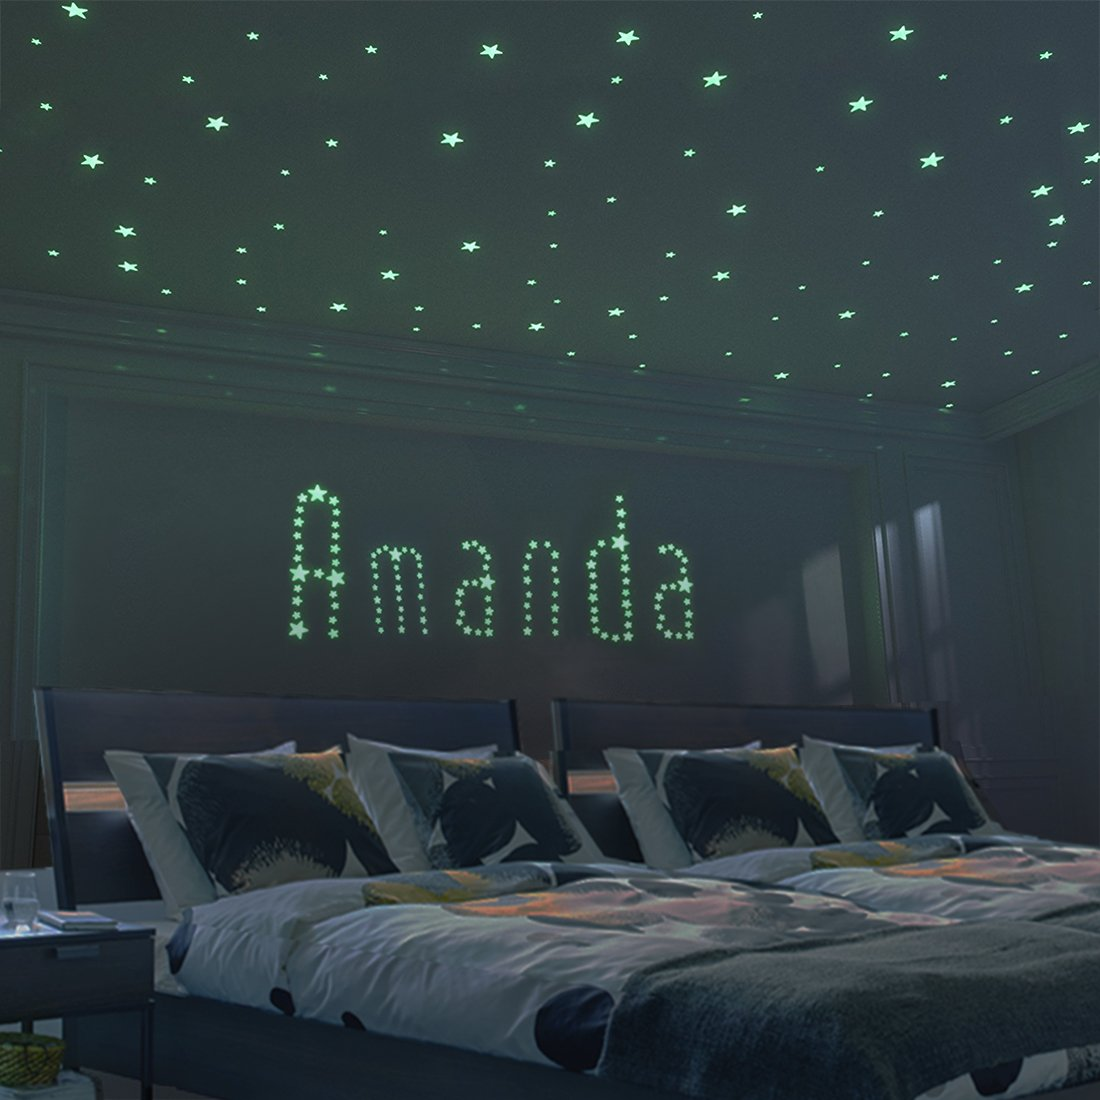 Glow in The Dark Moon and Stars - 300PCS - 9.4'' Large Moon and Various Size Fluorescent Stars for Ceiling Decoration in Kids Room by FRETOD (Image #3)